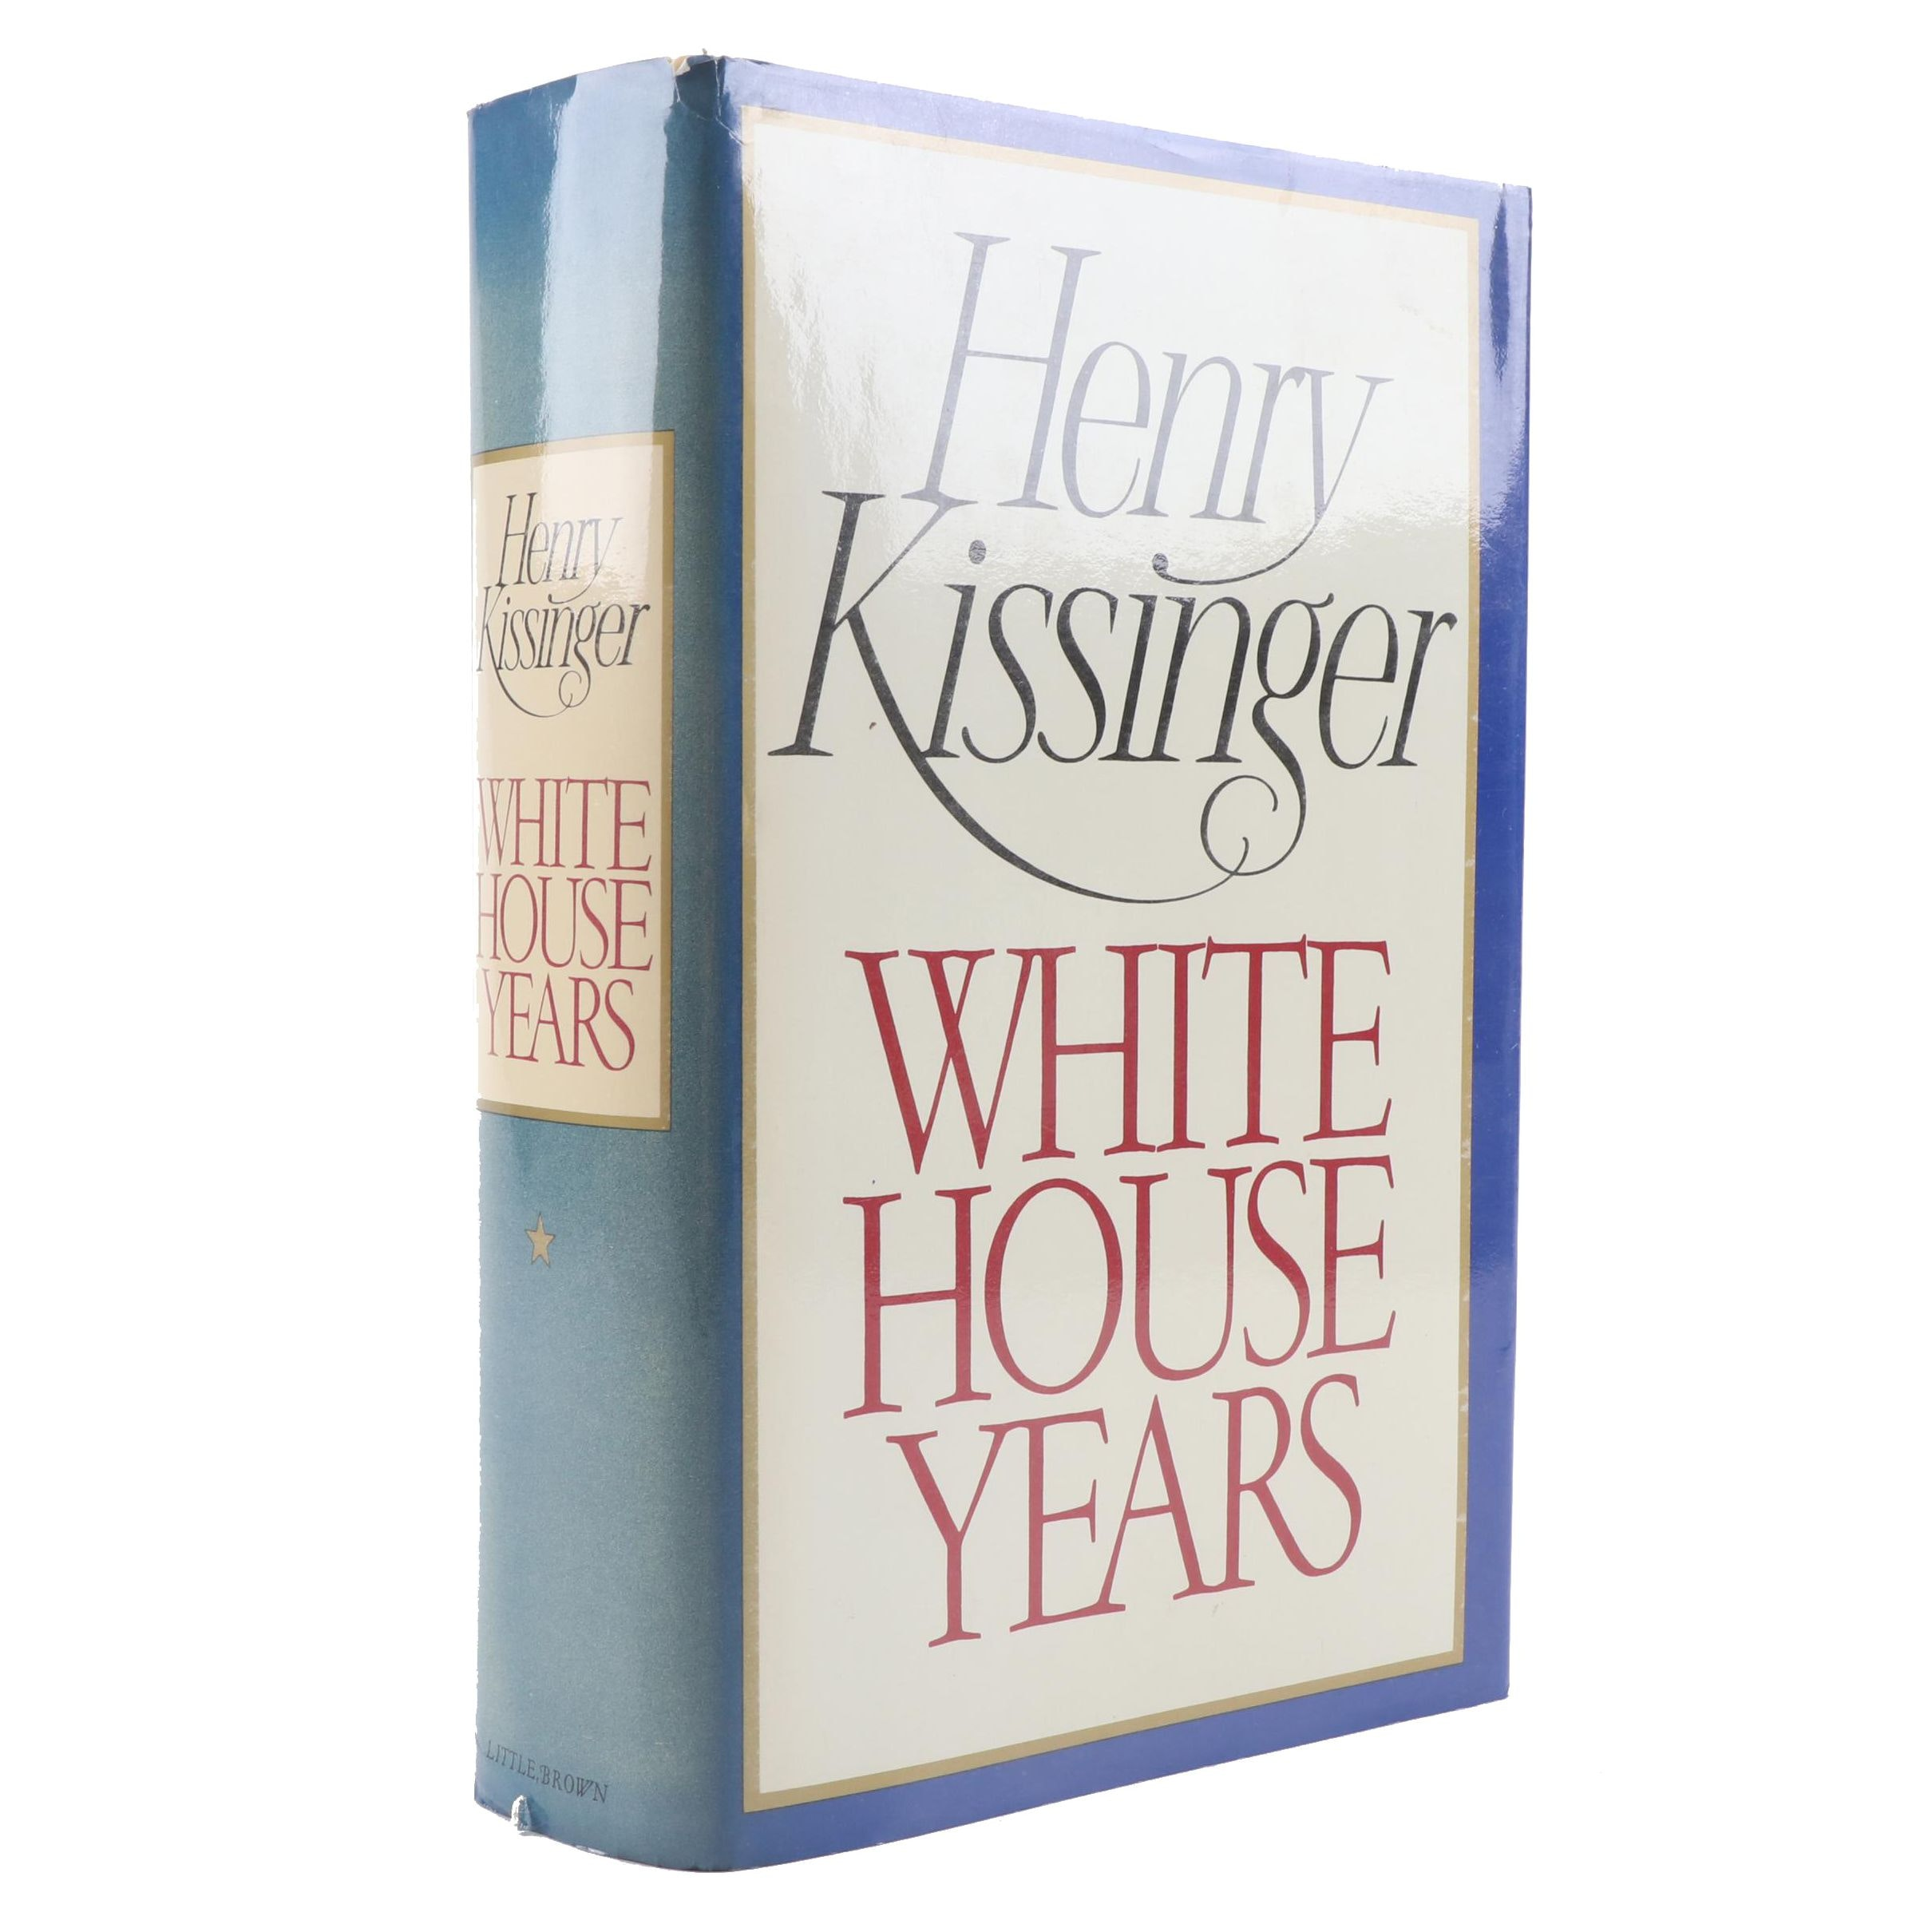 "1979 Signed ""White House Years"" by Henry Kissinger"